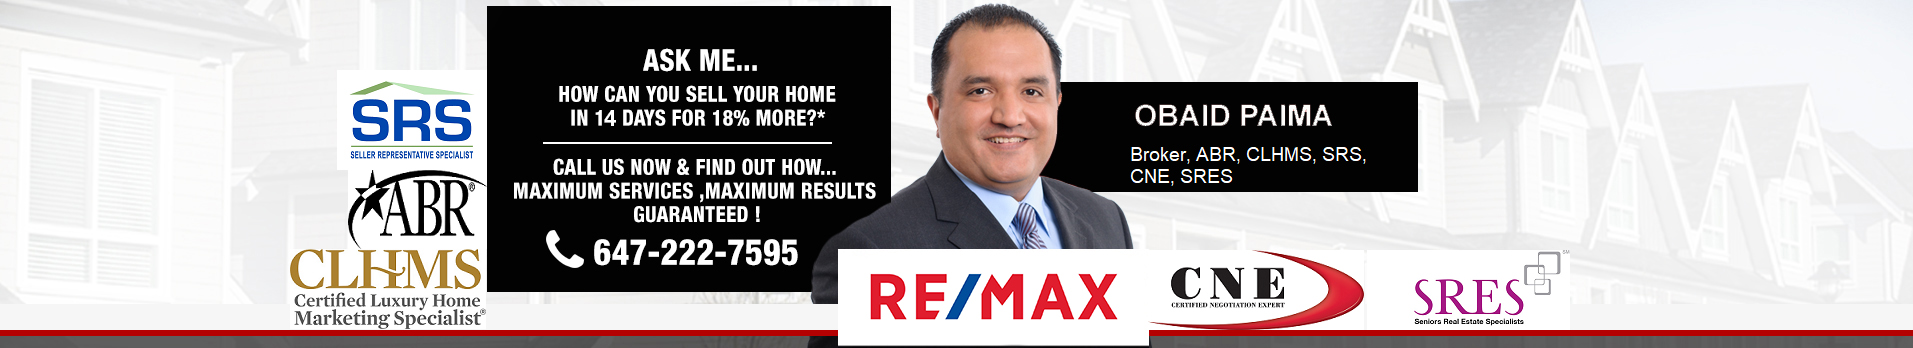 Searching for listings in Markham